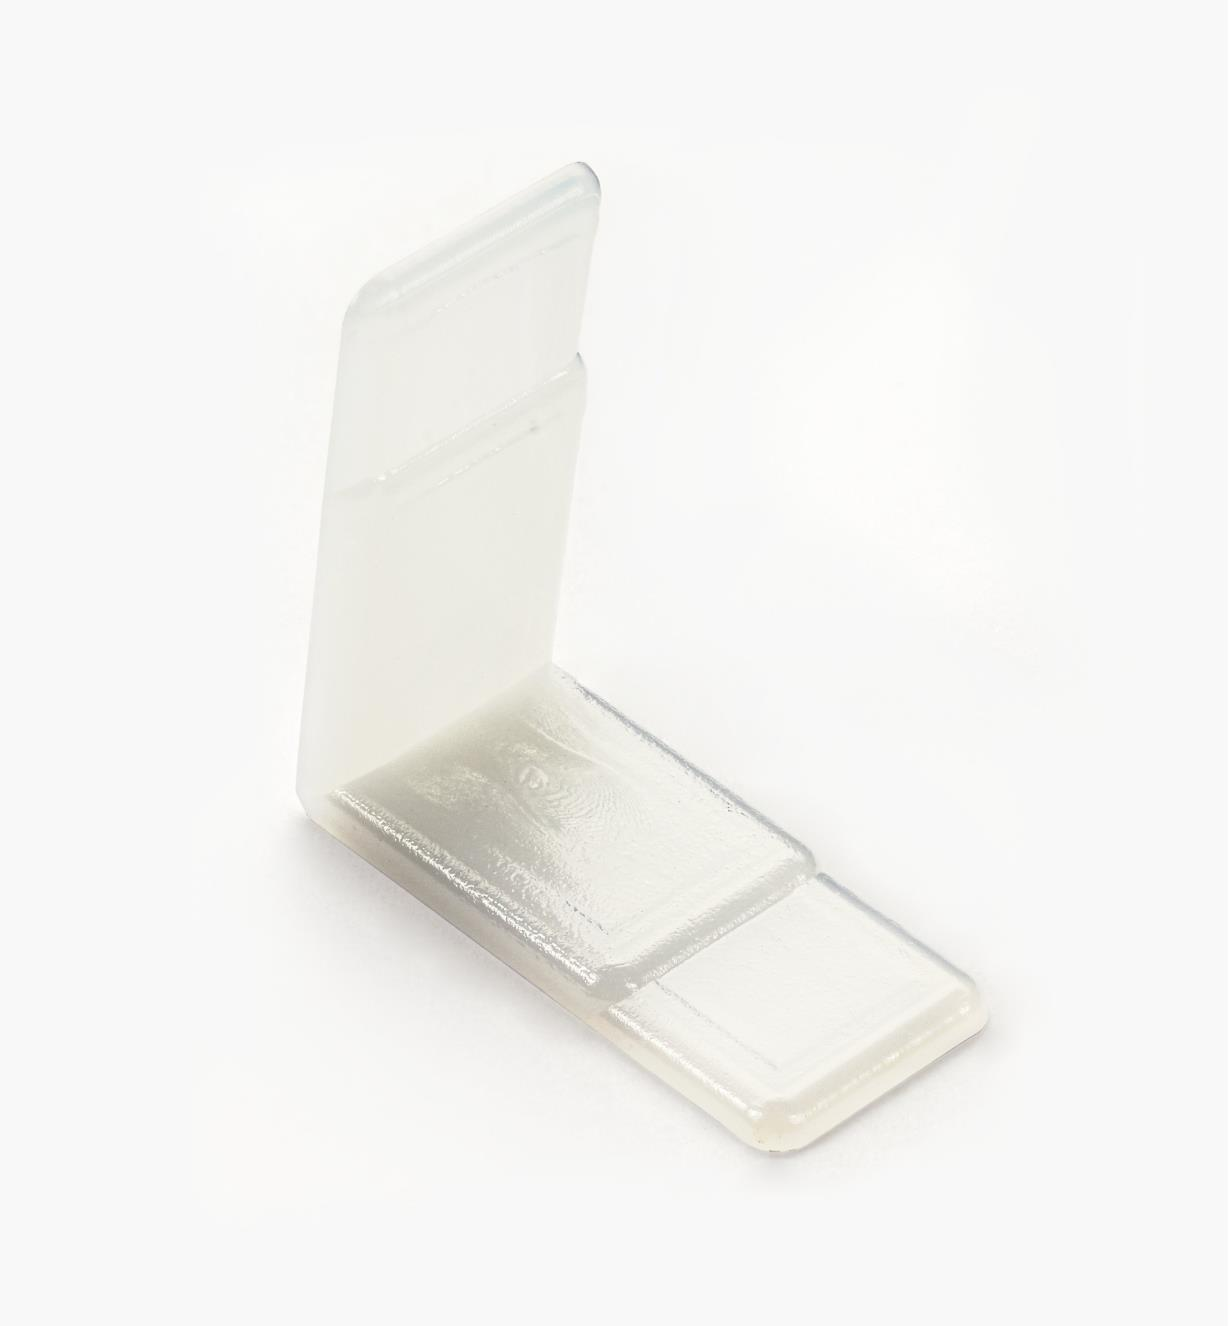 00K1260 - Corner Glide Strip, pkg. of 20